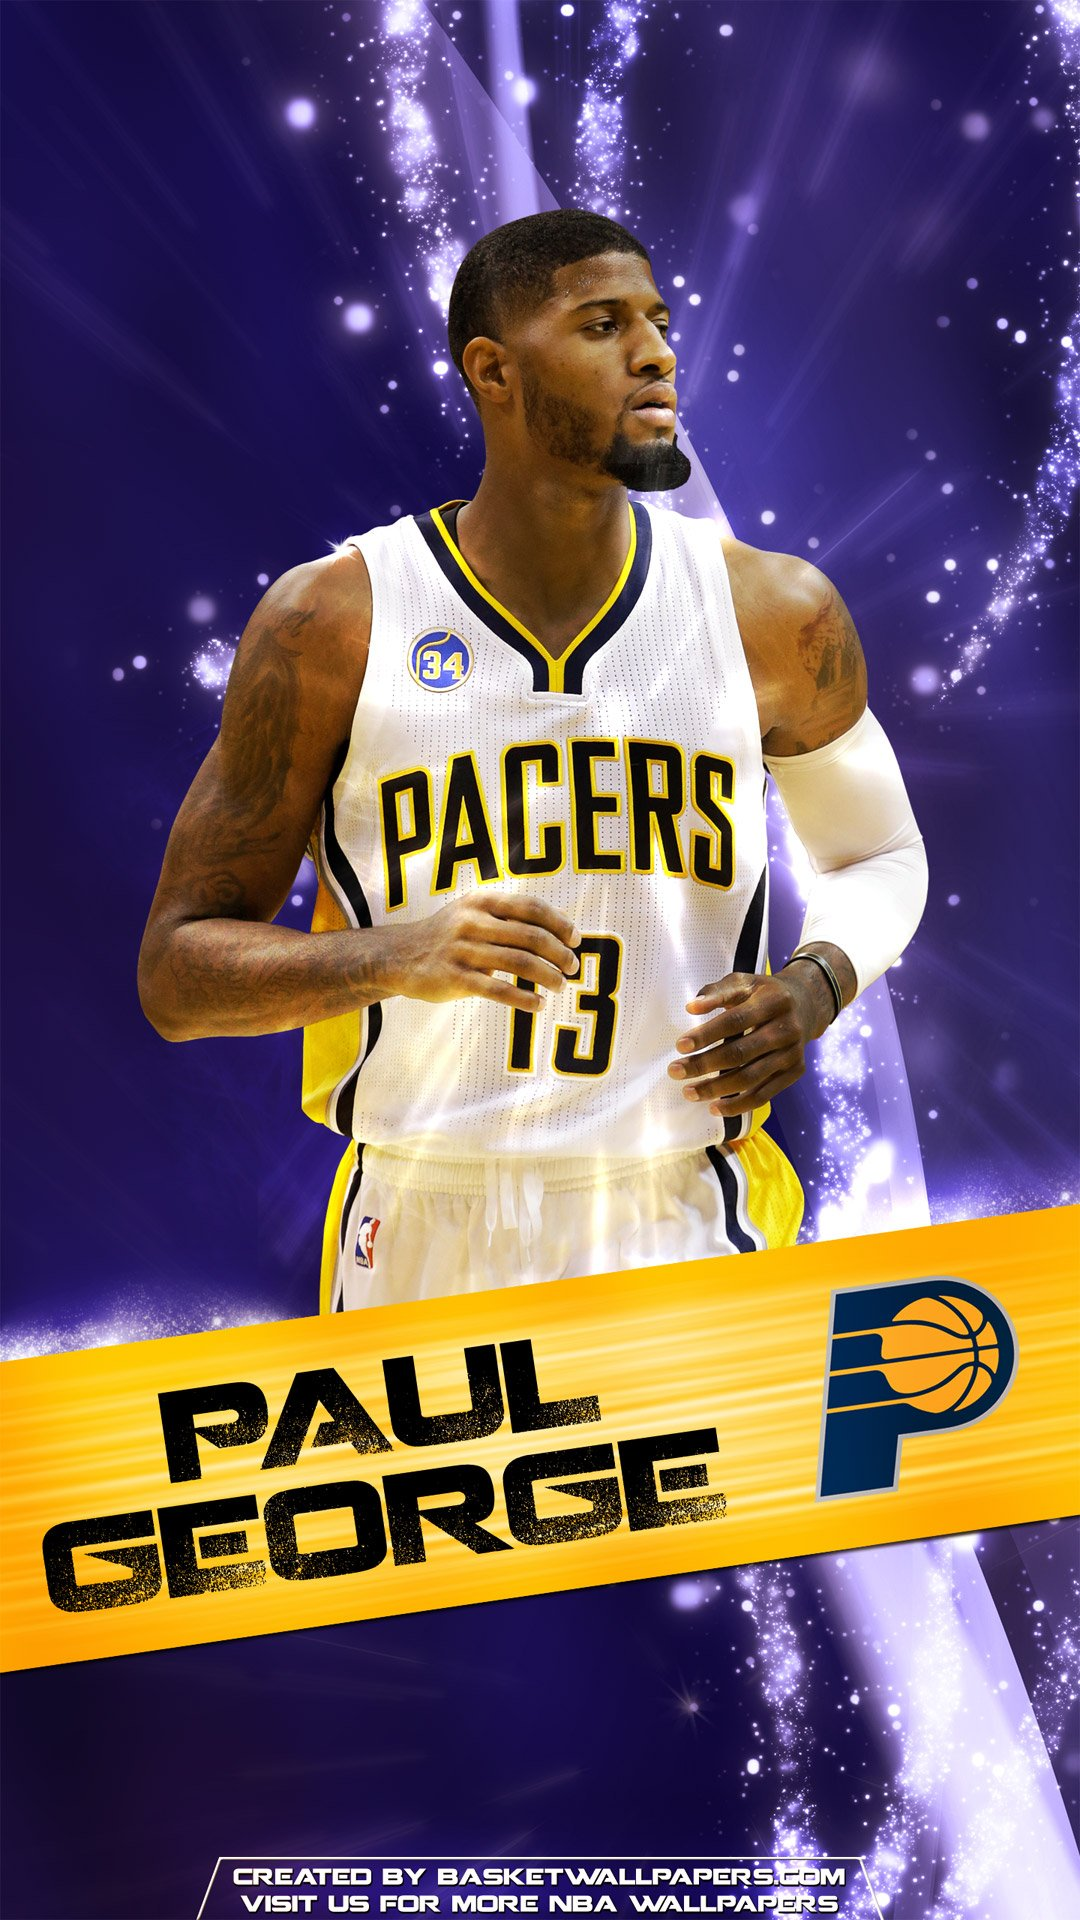 pacers phone wallpaper - photo #40